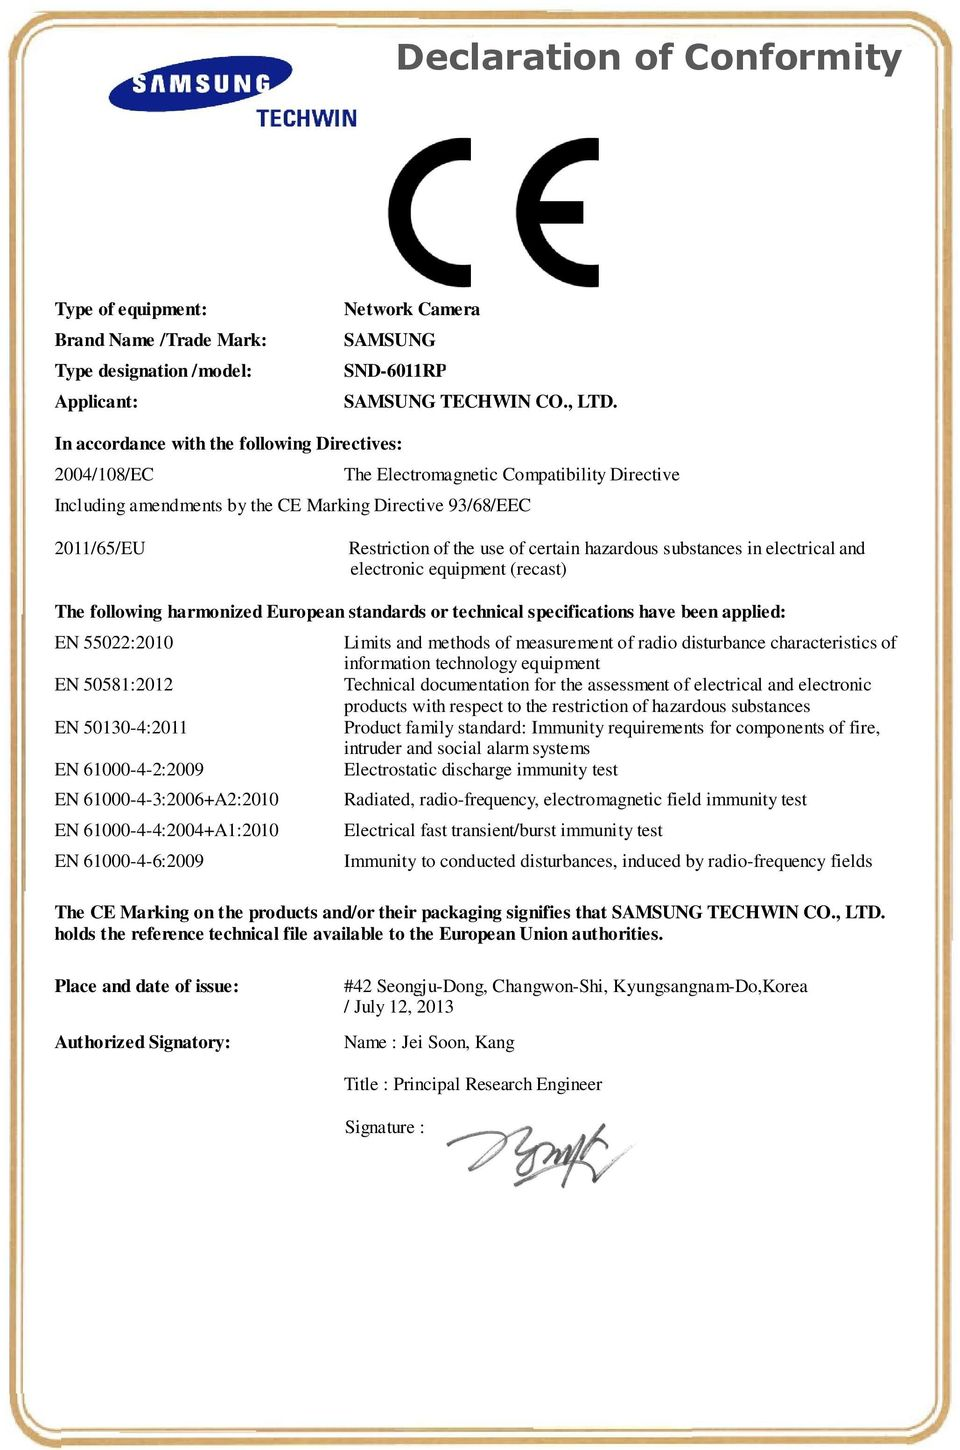 certain hazardous substances in electrical and electronic equipment (recast) The following harmonized European standards or technical specifications have been applied: EN 55022:2010 EN 50581:2012 EN